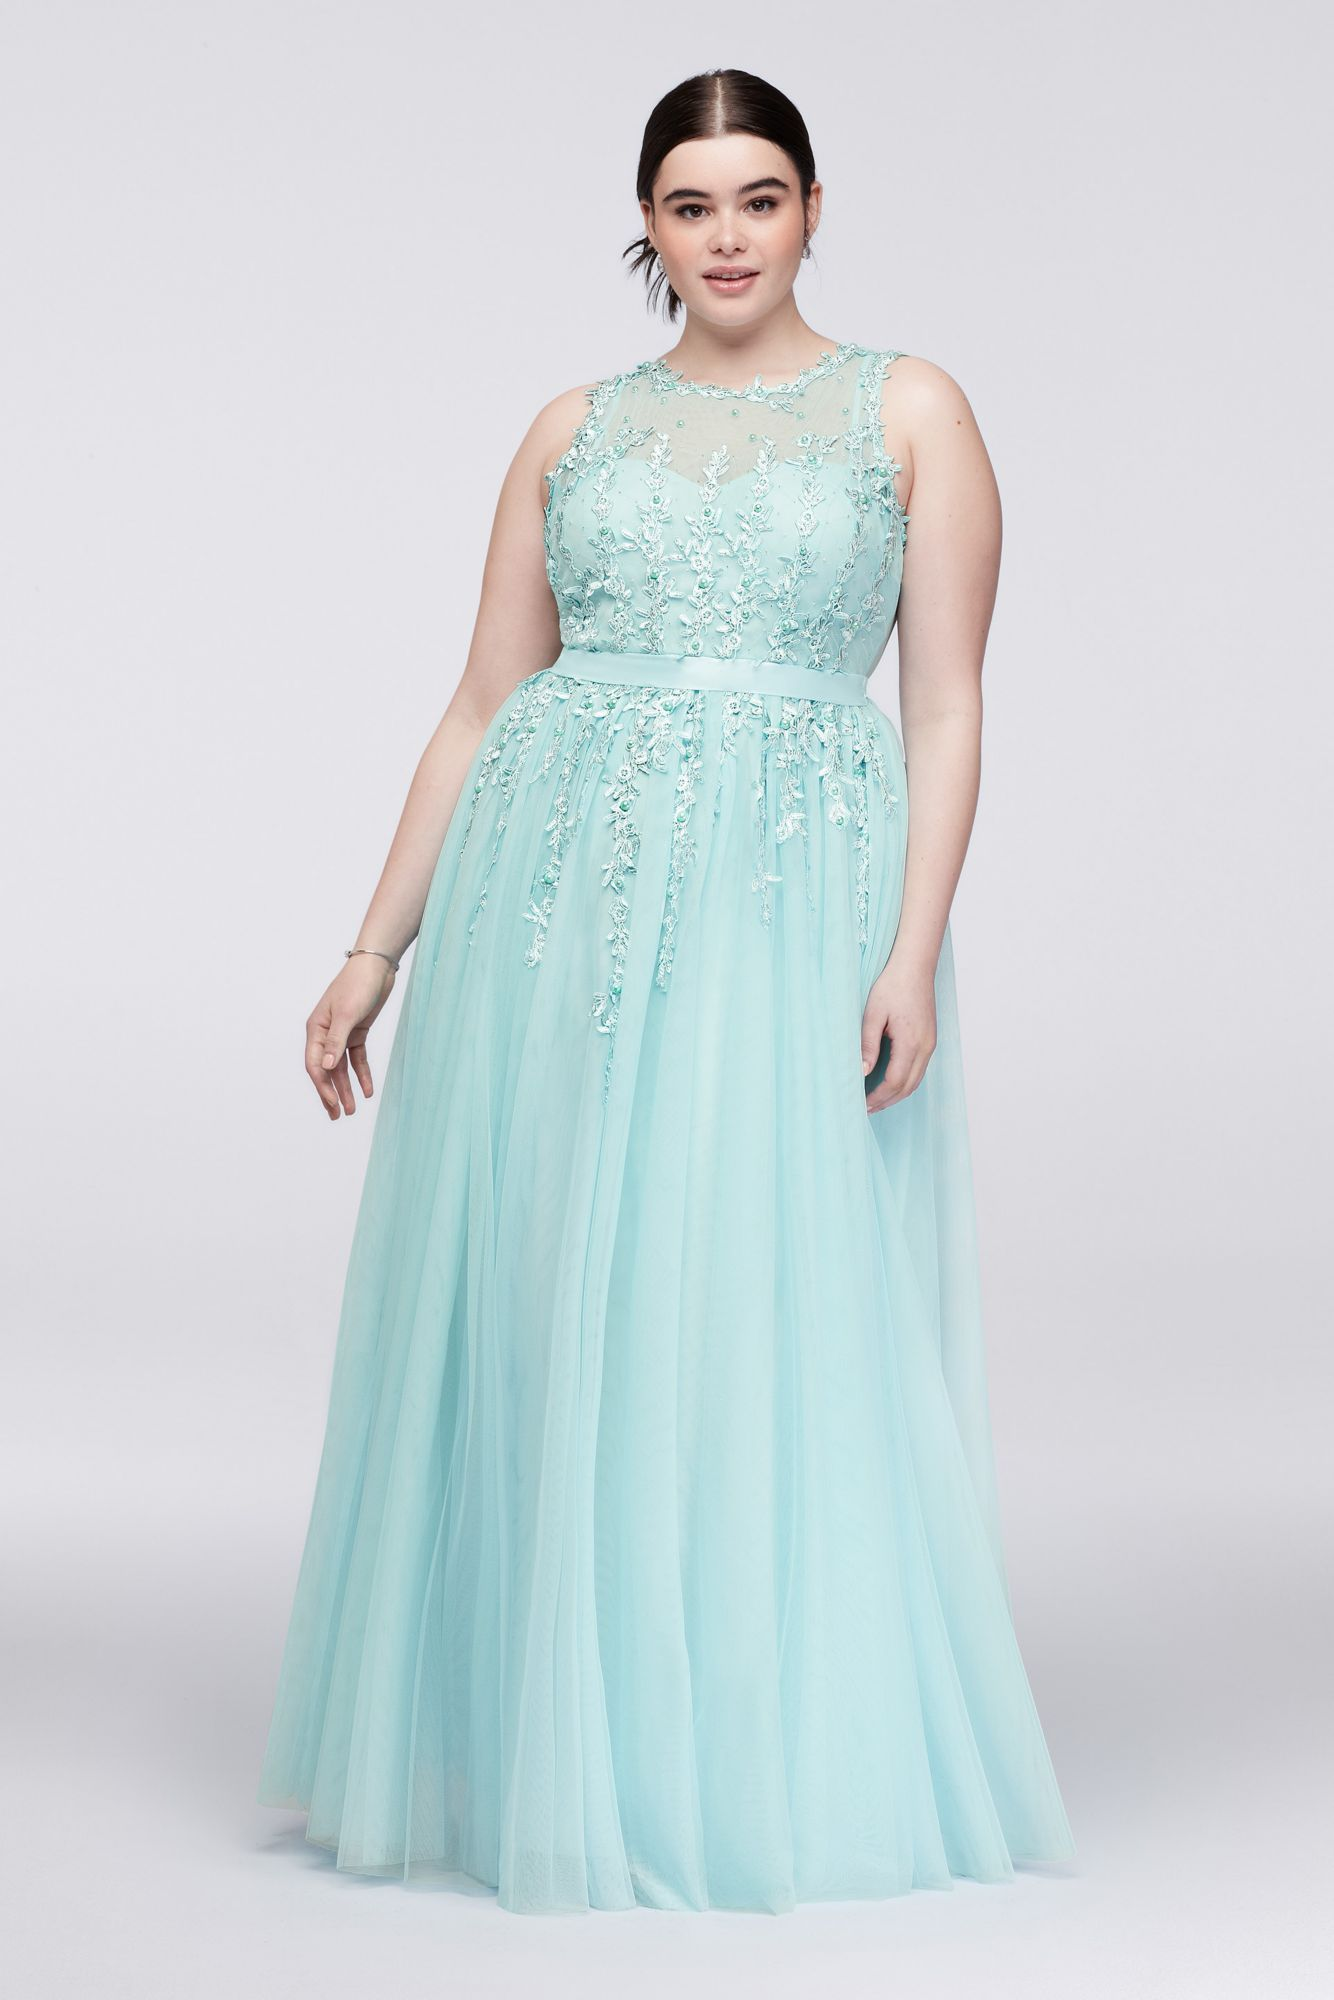 Plus Size Floor Length Halter Neck Keyhole Neckline Prom Gown 57061W ...